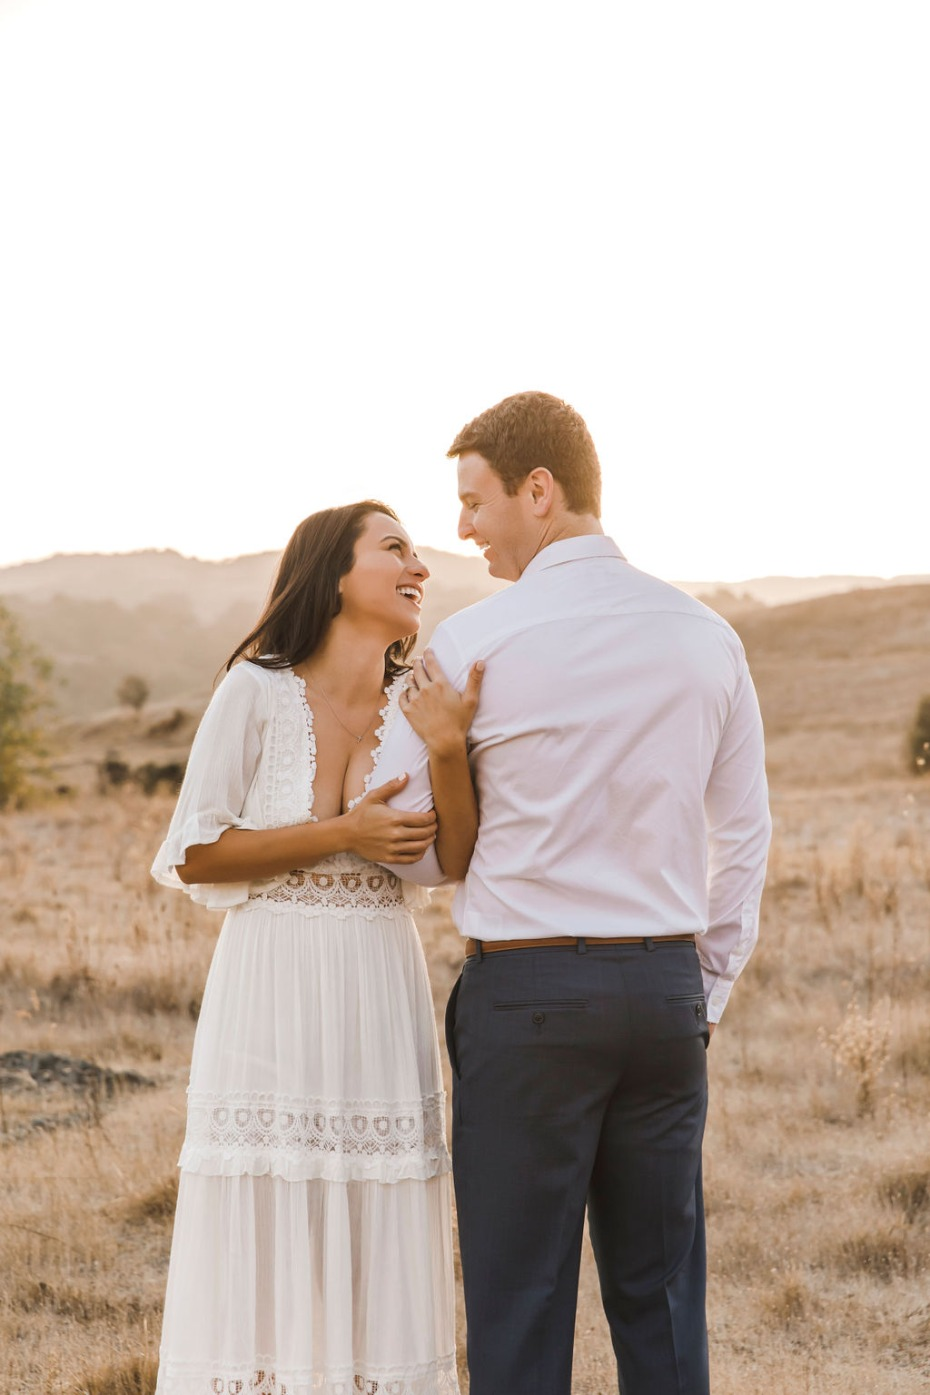 3 Real Reasons You'll Want to Do An Engagement Photo Session